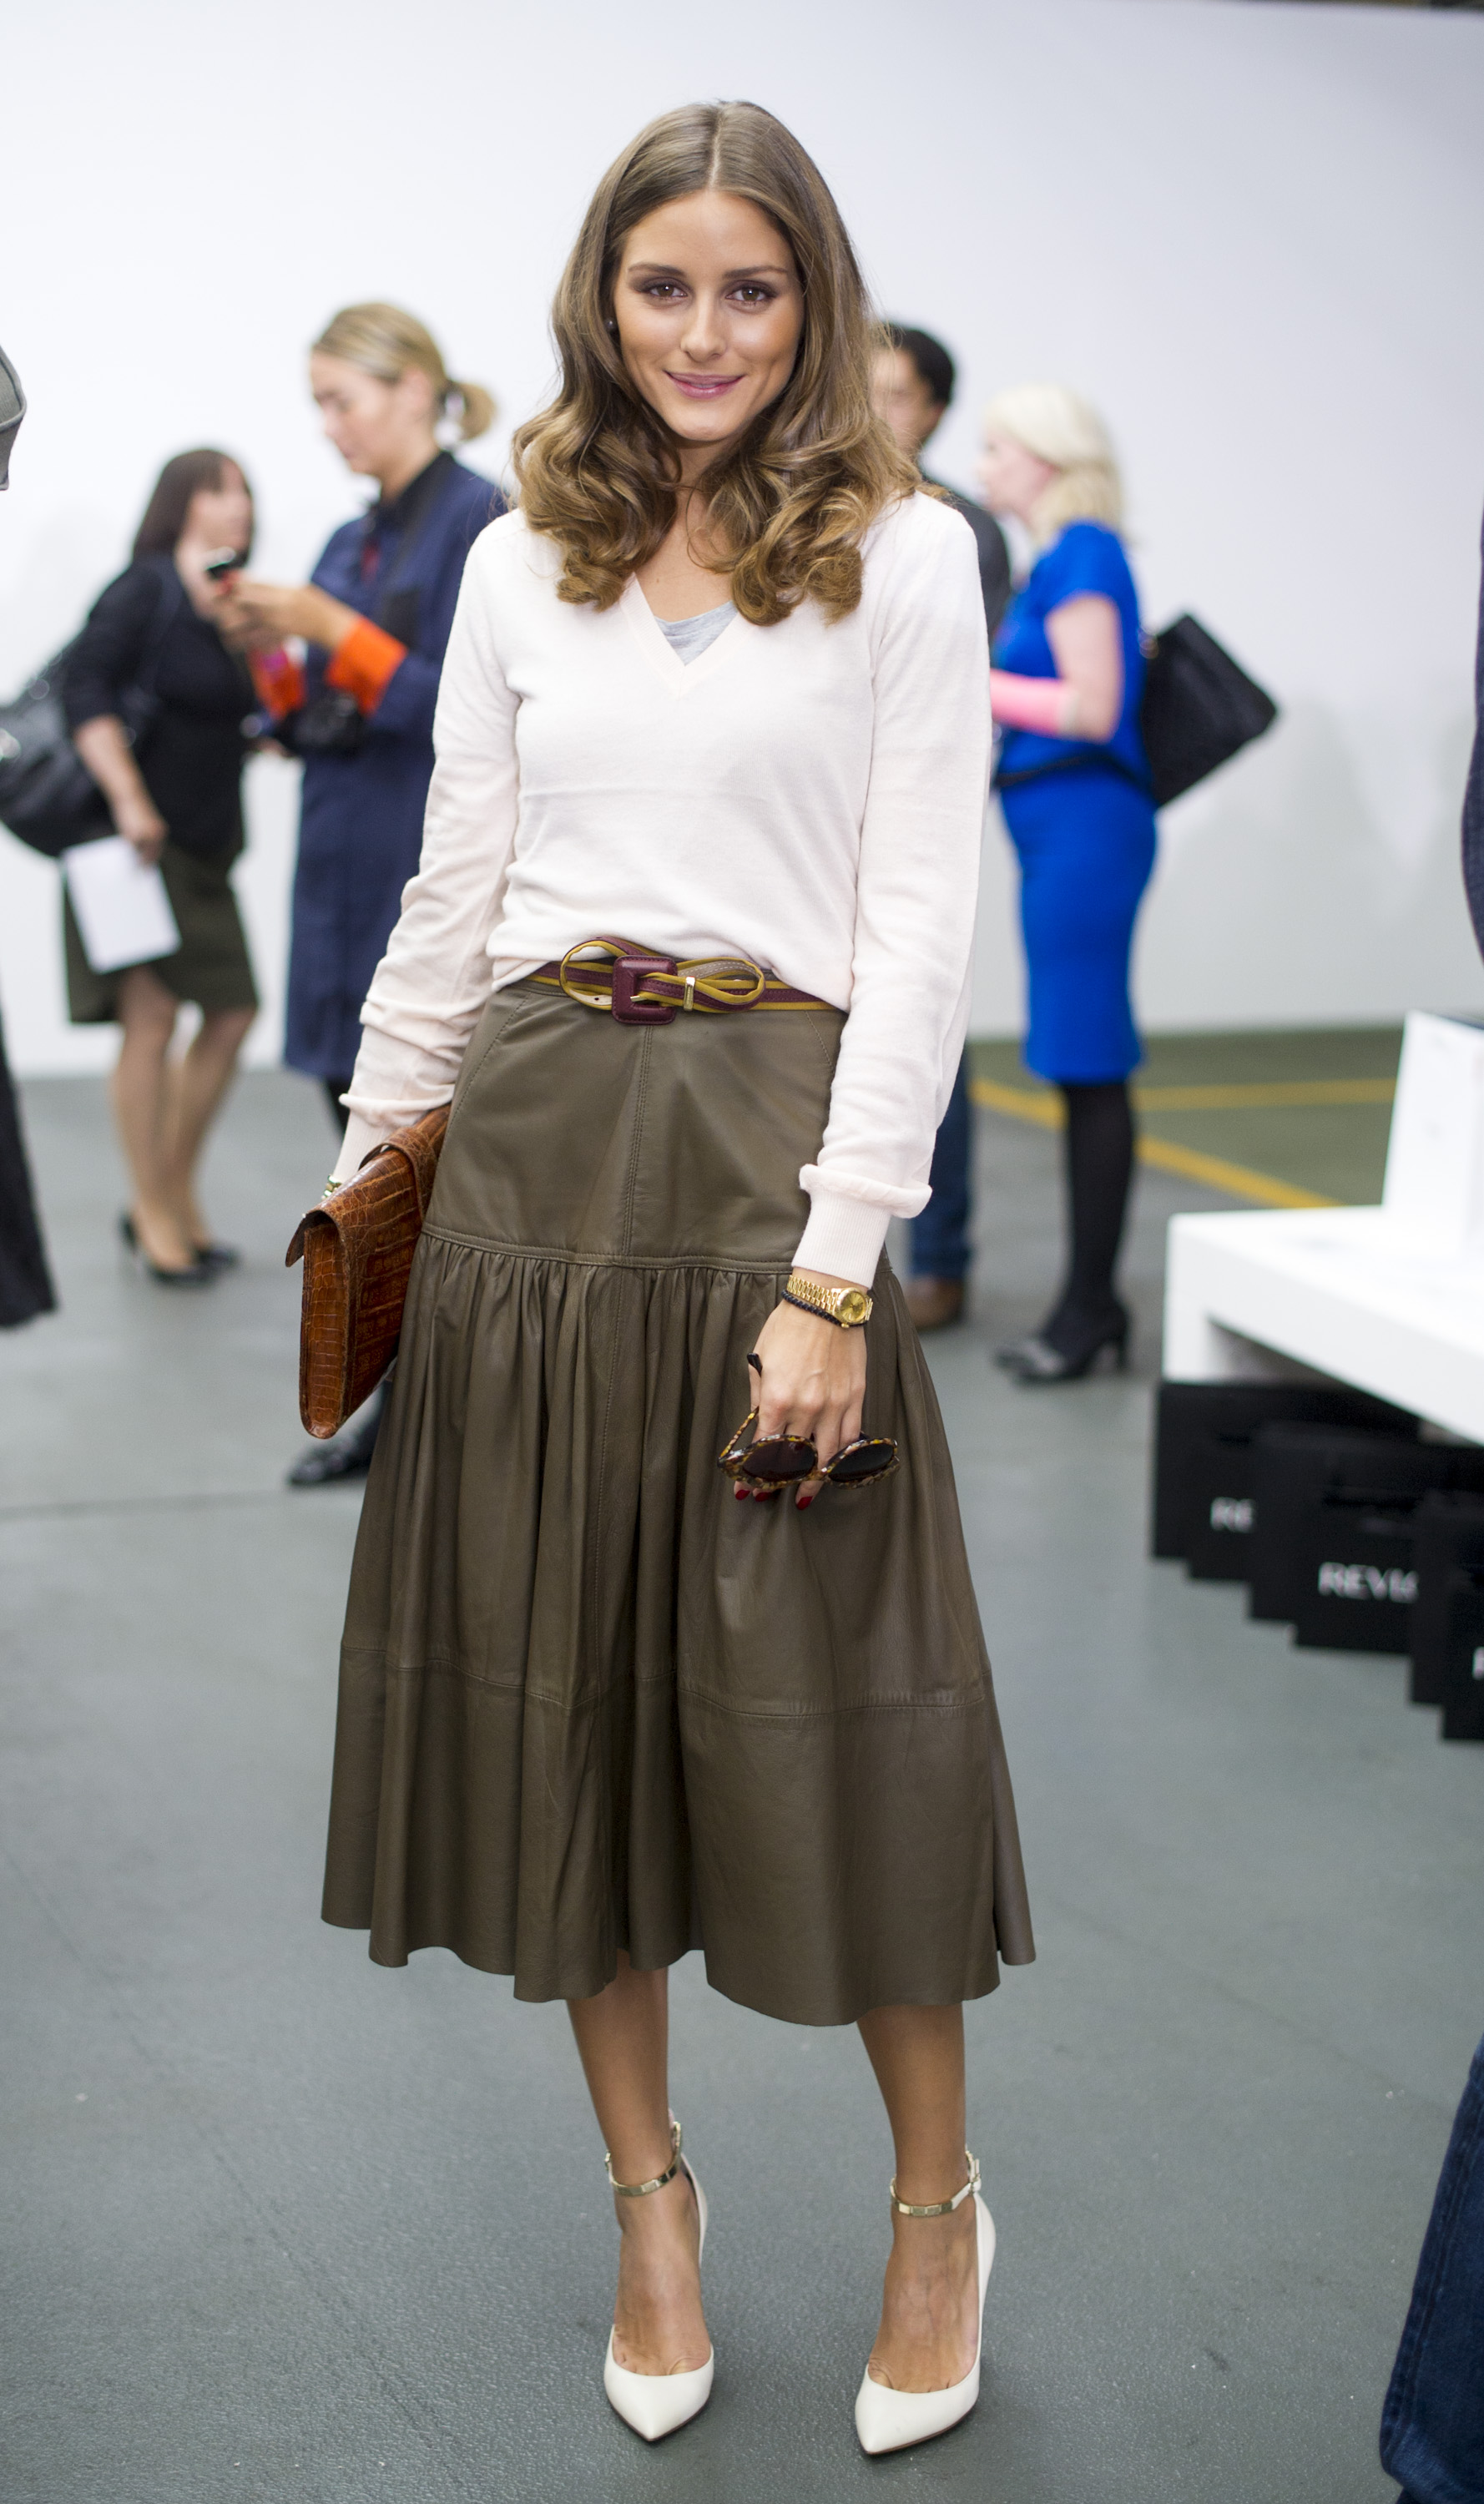 Olivia played ladylike with a contemporary angle at Antonio Berardi in London. In a Reiss top and skirt, she added in her quintessential dose of accessories, like a slim belt, Hermès clutch, and Valentino heels, to give the separates her own twist.